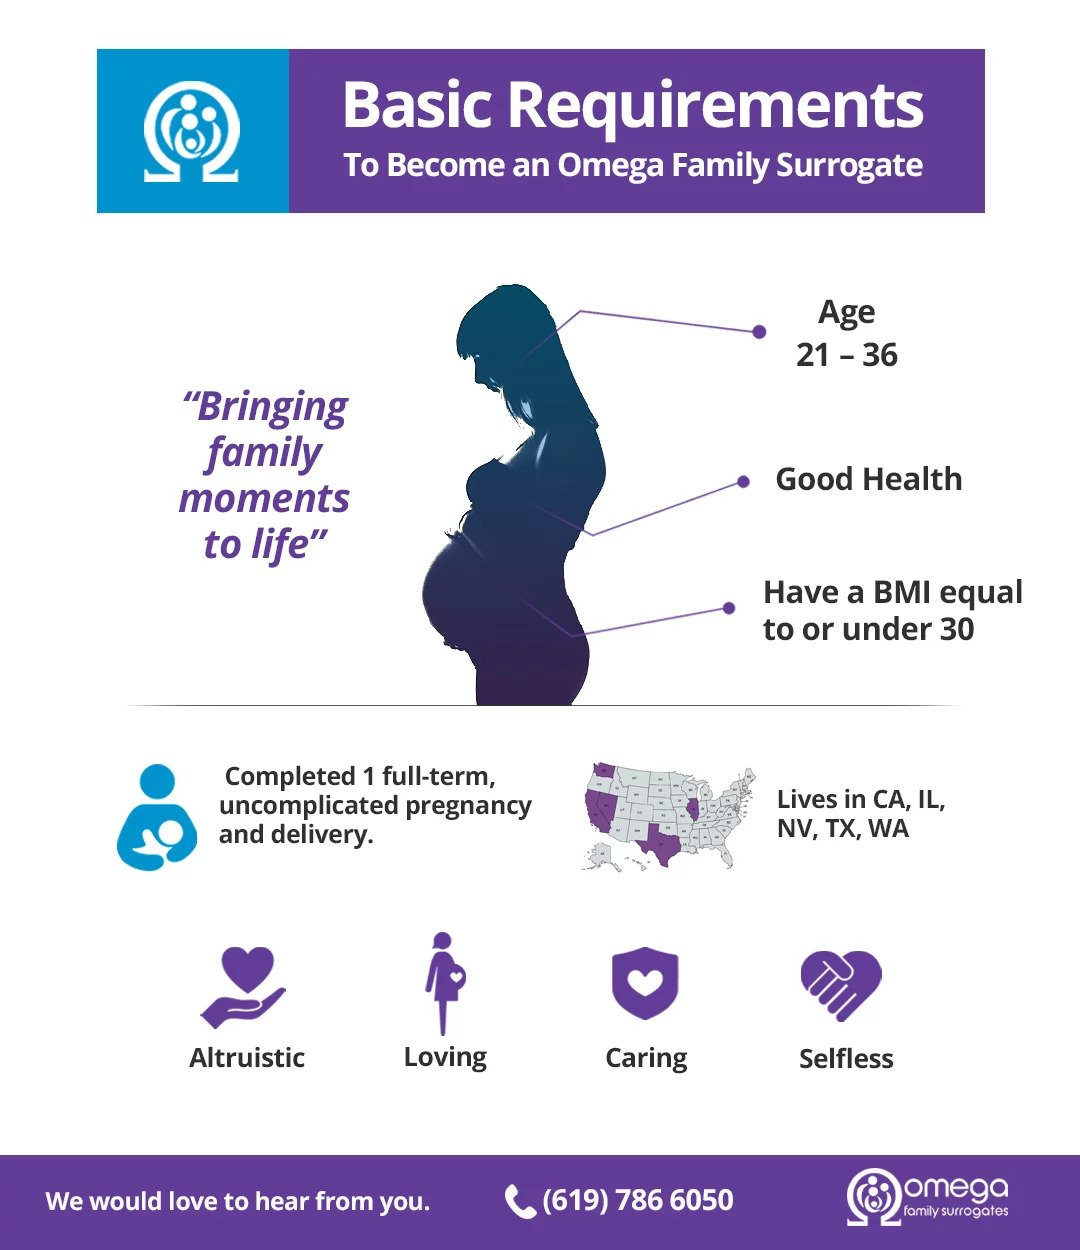 Basic requirements for surrogacy